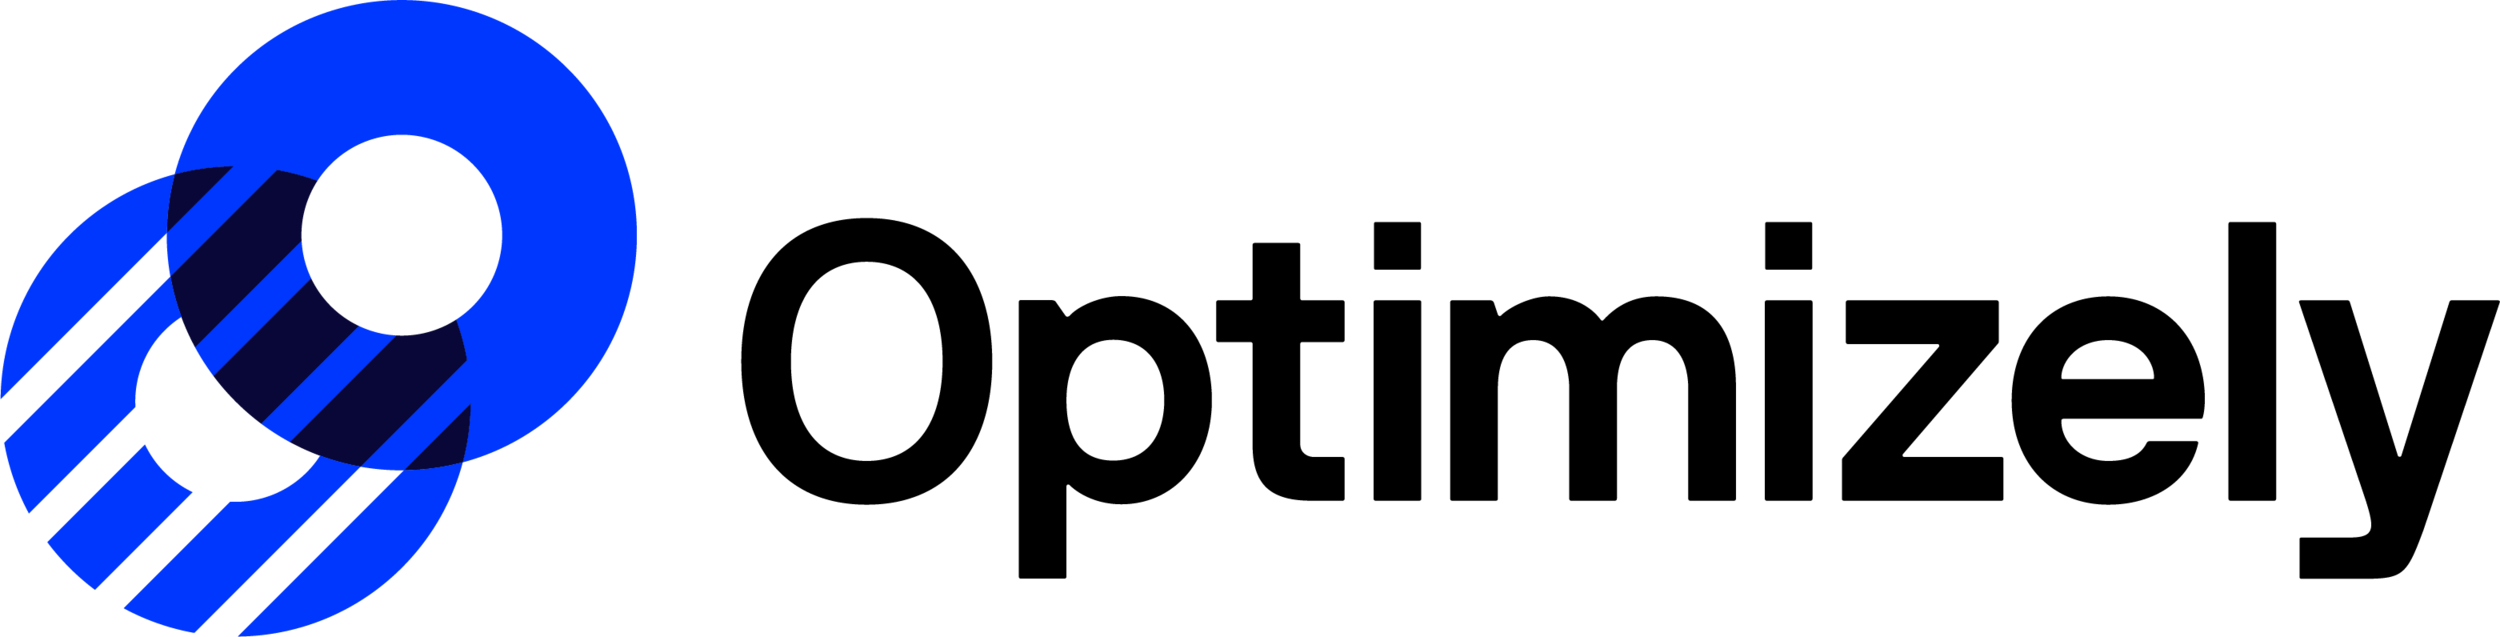 Optimizely_Logo_Primary_Full_Color_Dark.png